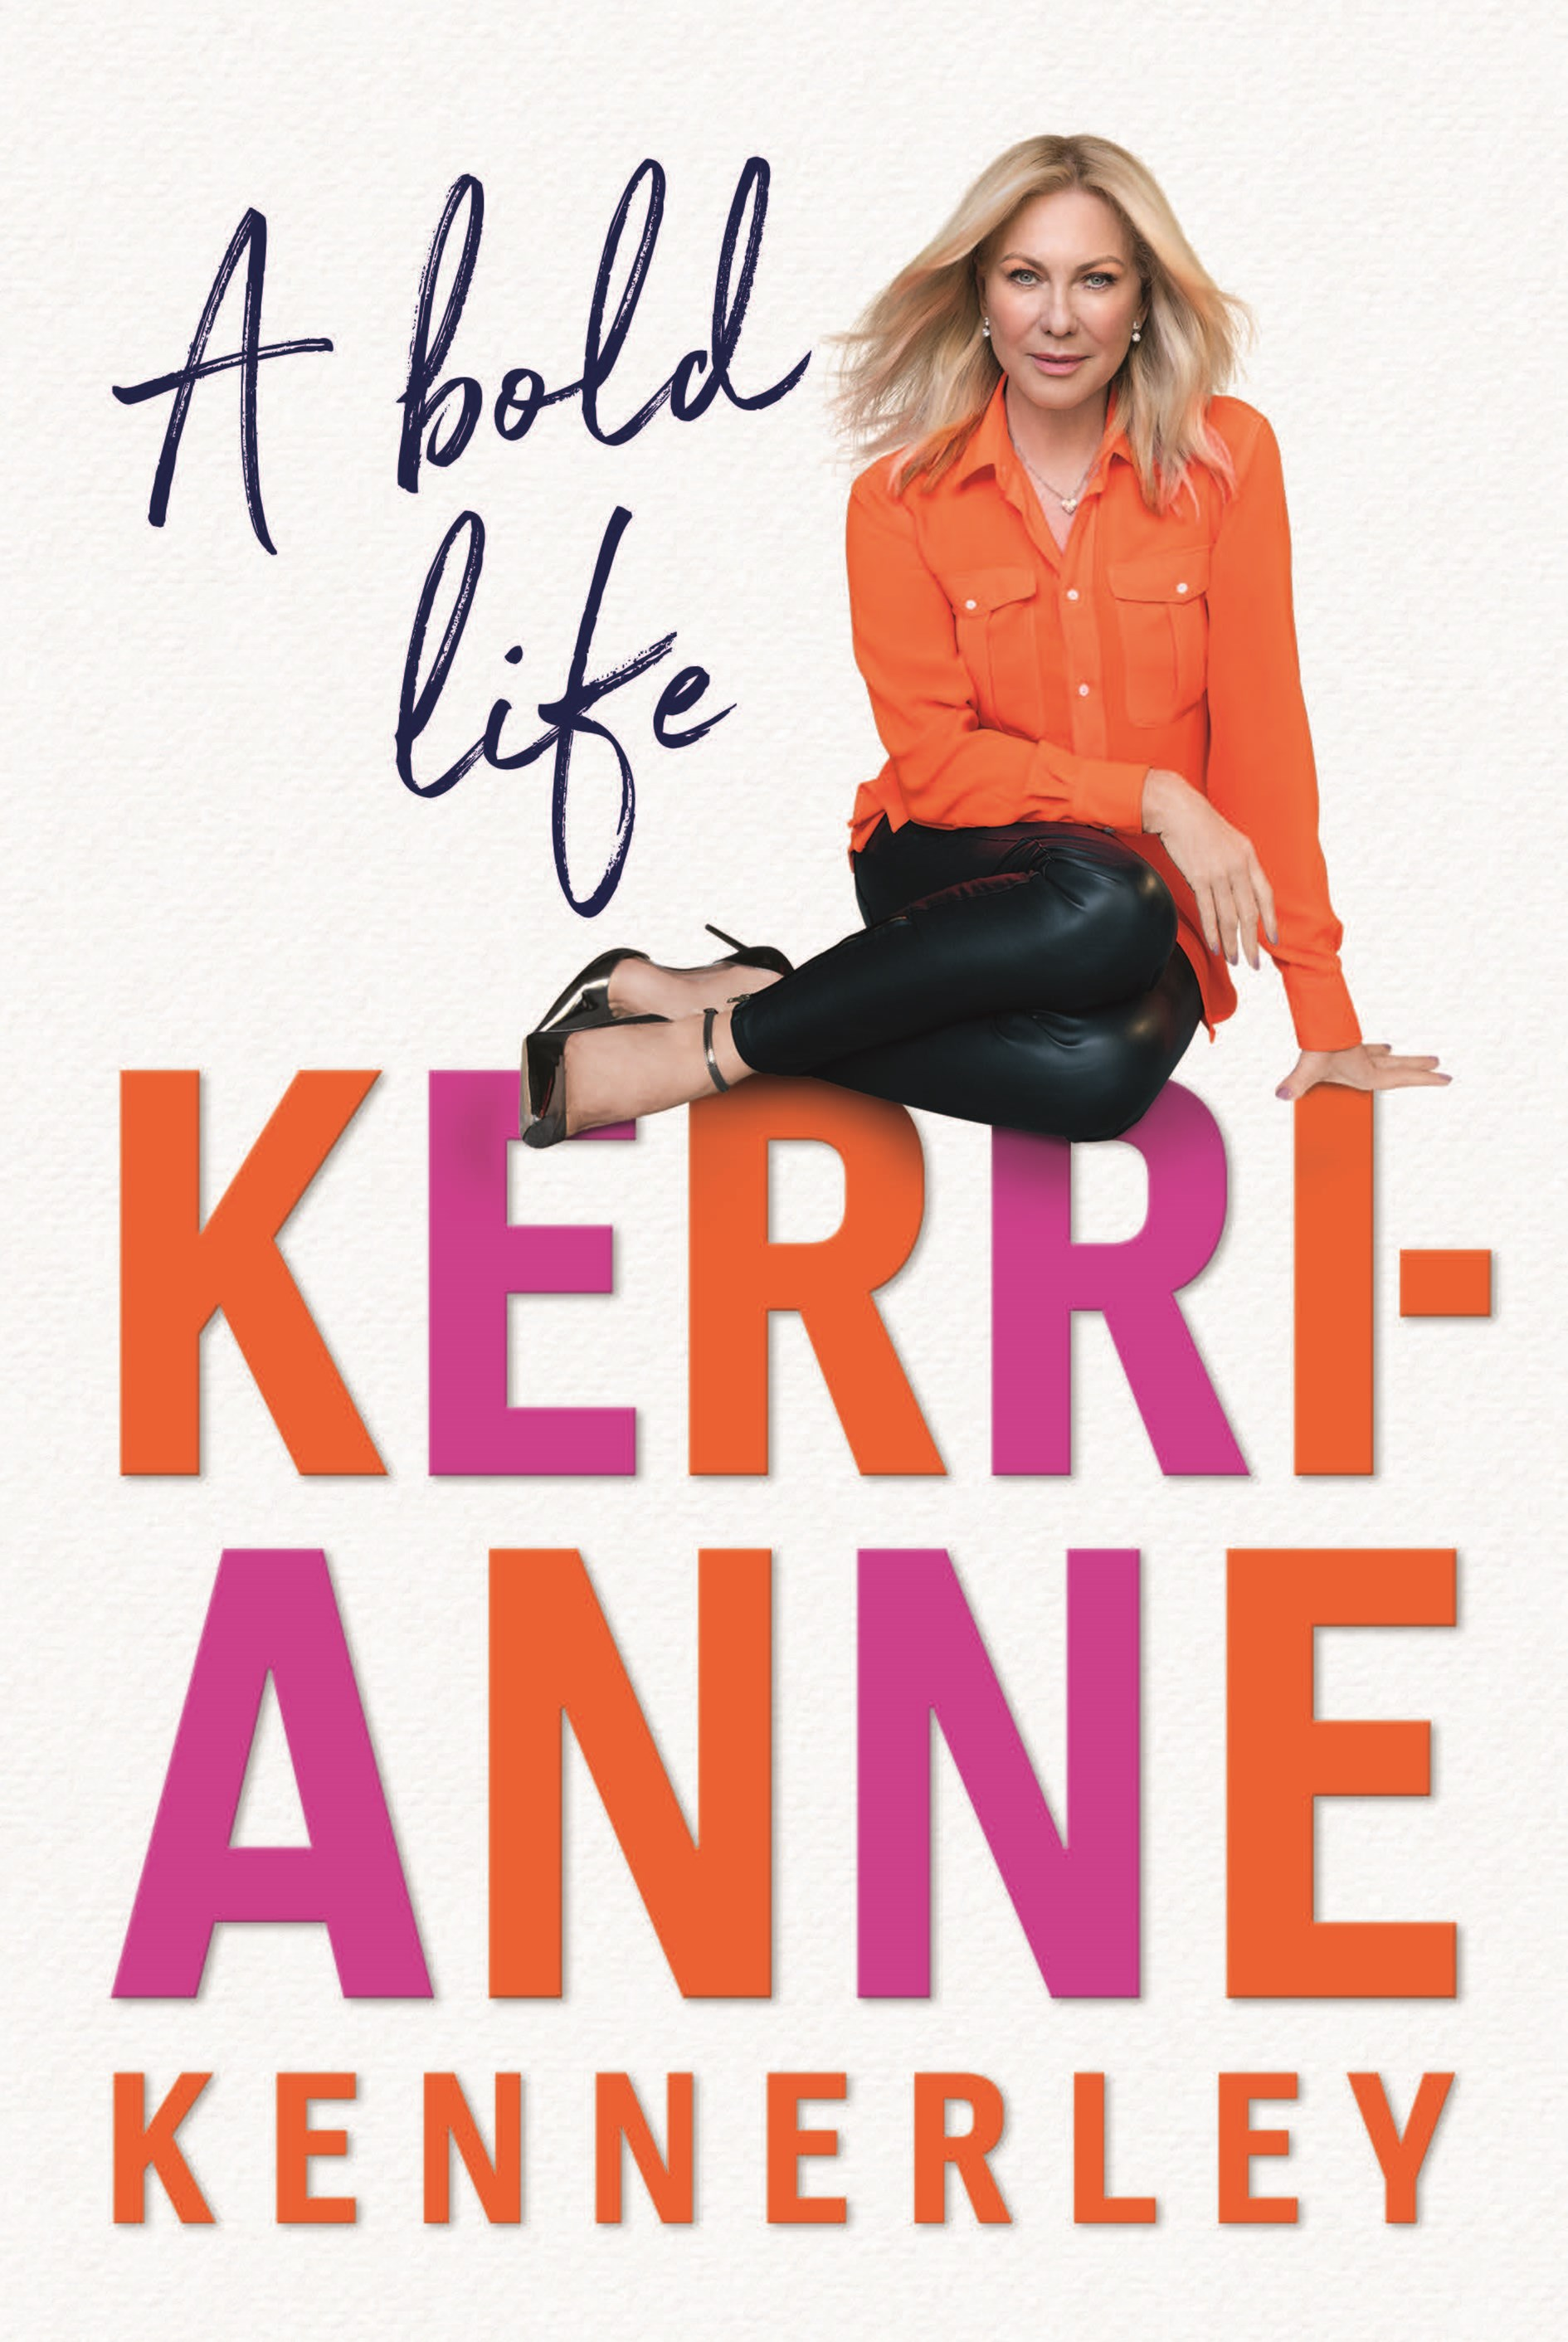 Enjoy lunch with Australia's queen of television, Kerri-Anne Kennerley